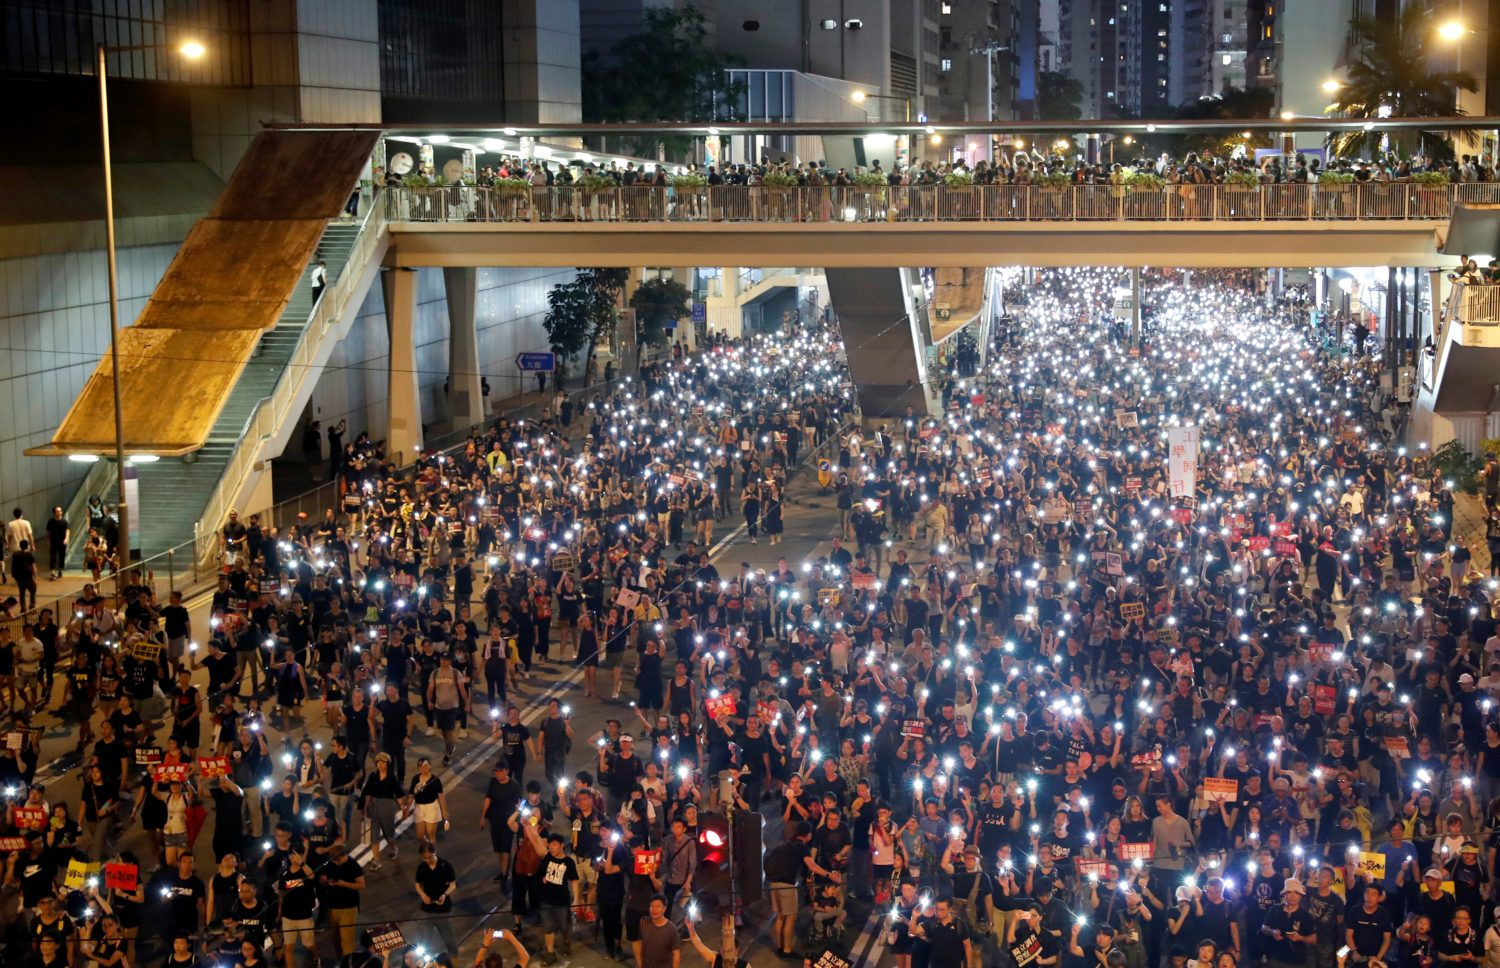 Anti-extradition bill protesters use the flashlights from their phones as they march during the anniversary of Hong Kong's handover to China in Hong Kong, China July 1, 2019. REUTERS/Tyrone Siu